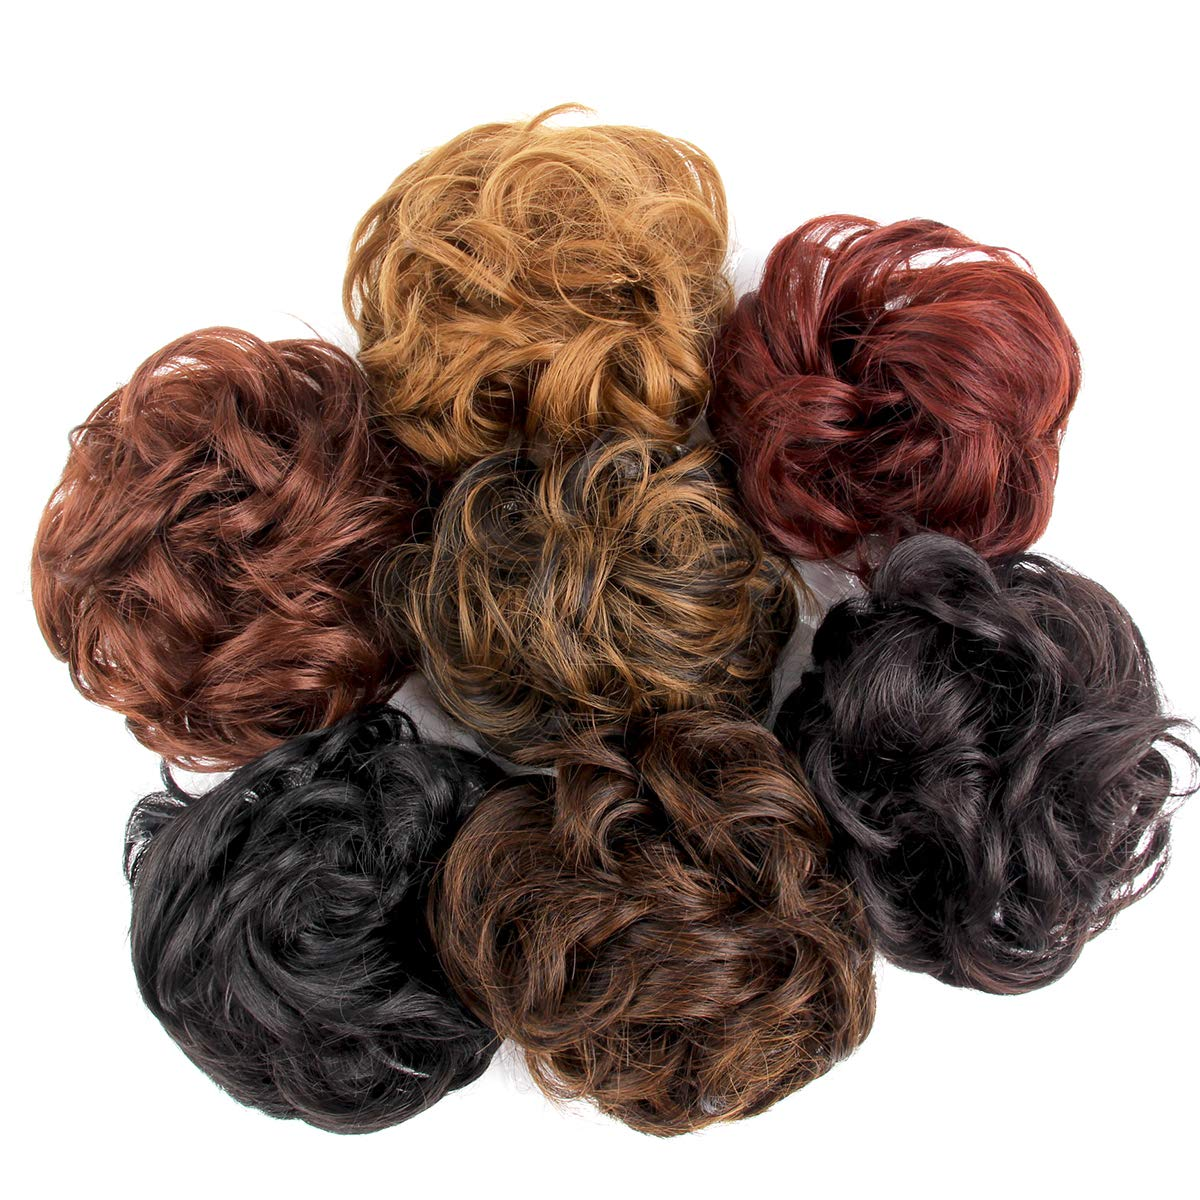 Leeons Wavy Donut Updo Ribbon Ponytail Hair Extensions Curly Messy Bun Dish Scrunchy Scrunchie Hairpiece Wave Bun Scrunchie Synthetic Hair Bun (#2) by LEEONS (Image #3)